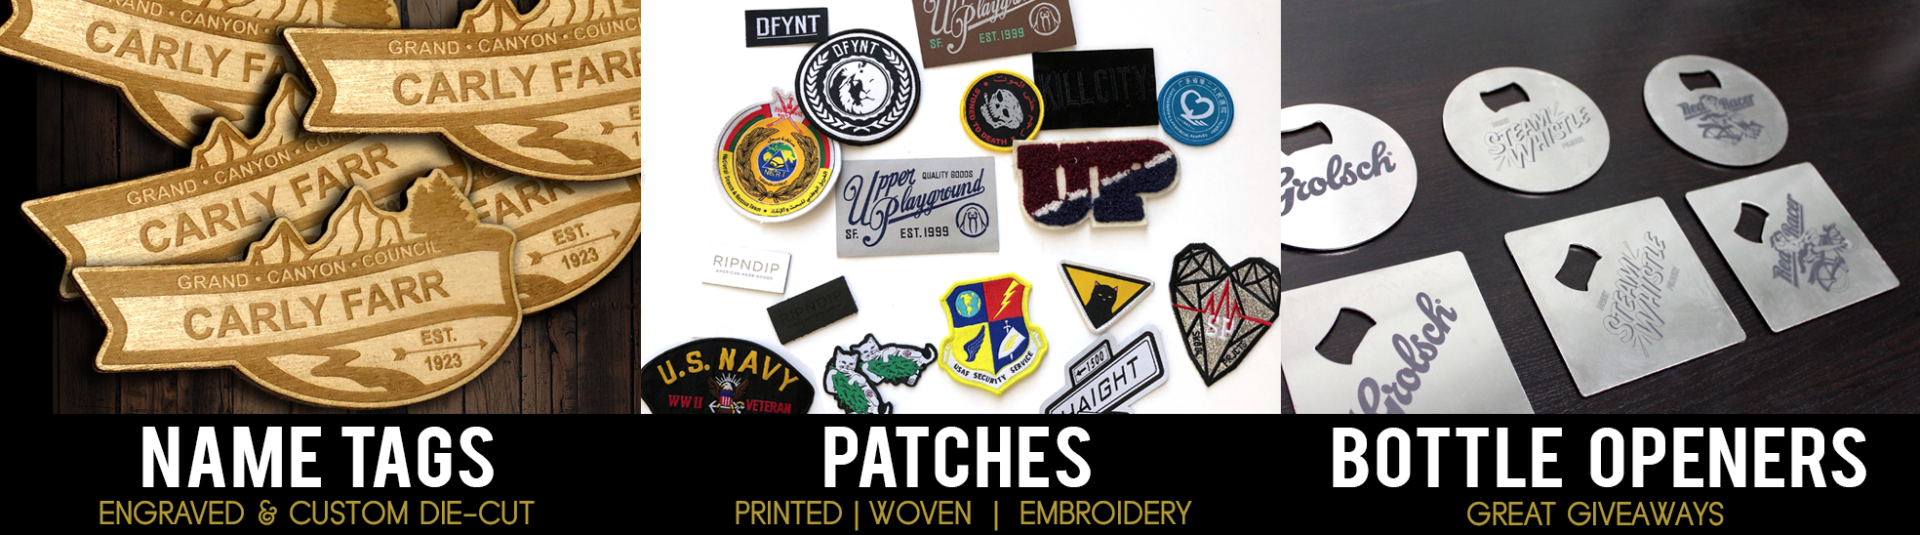 accessories_name_tags_and_patches Phoenix Arizona Company